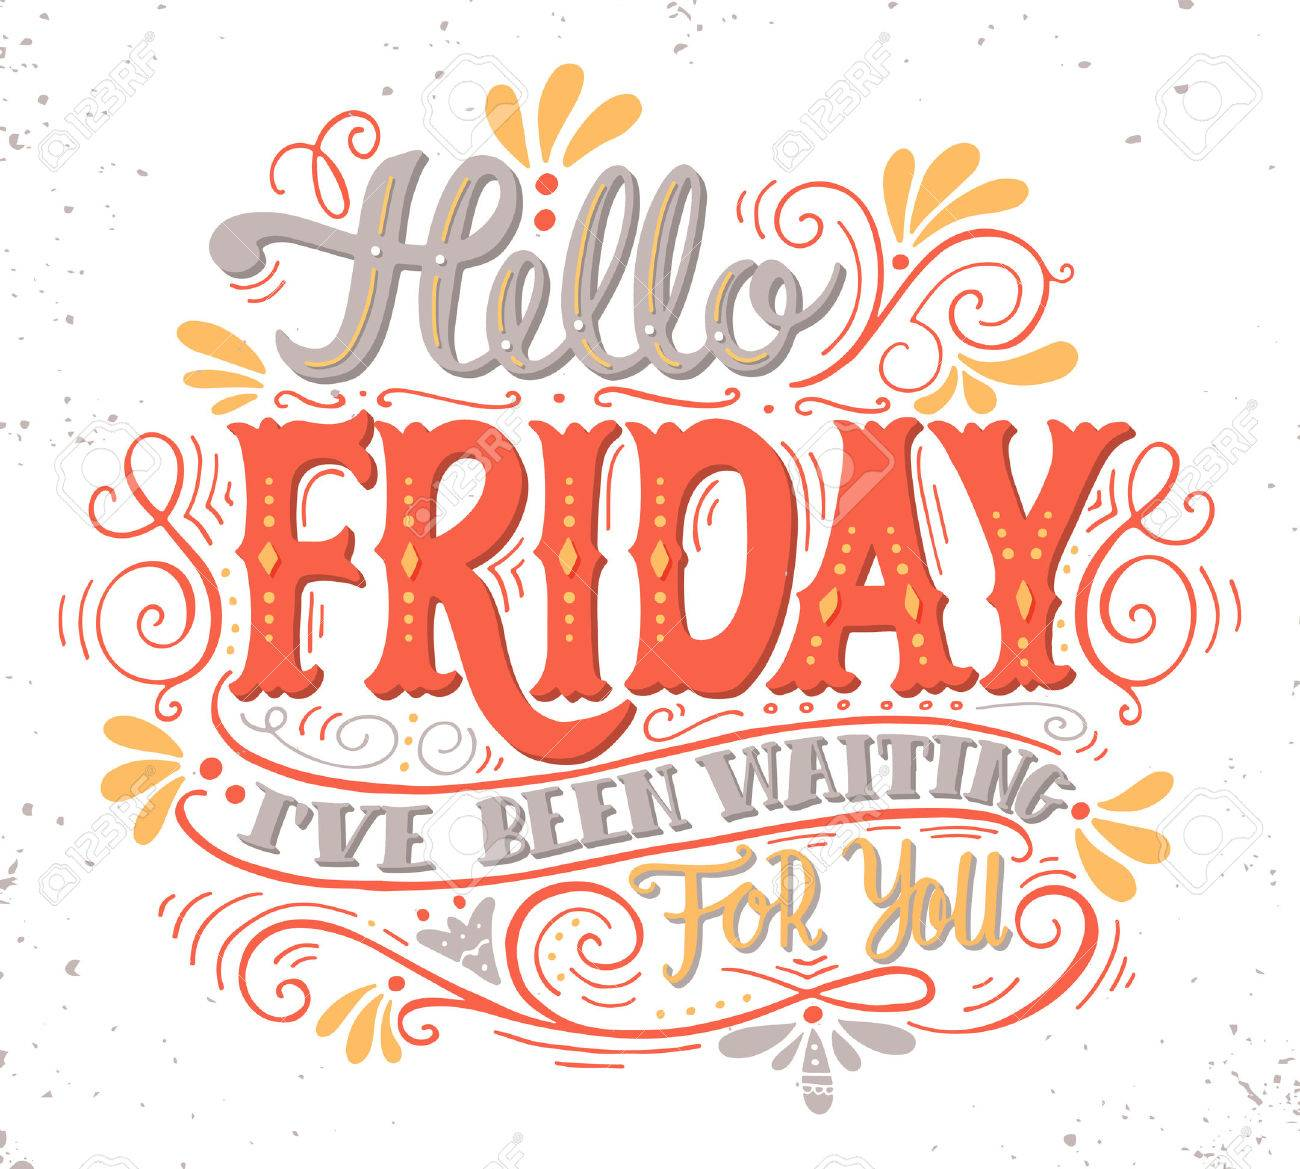 Hello friday. I've been waiting for you. Quote. Hand drawn vintage illustration with hand lettering. This illustration can be used as a print on t-shirts and bags or as a poster. - 51527496